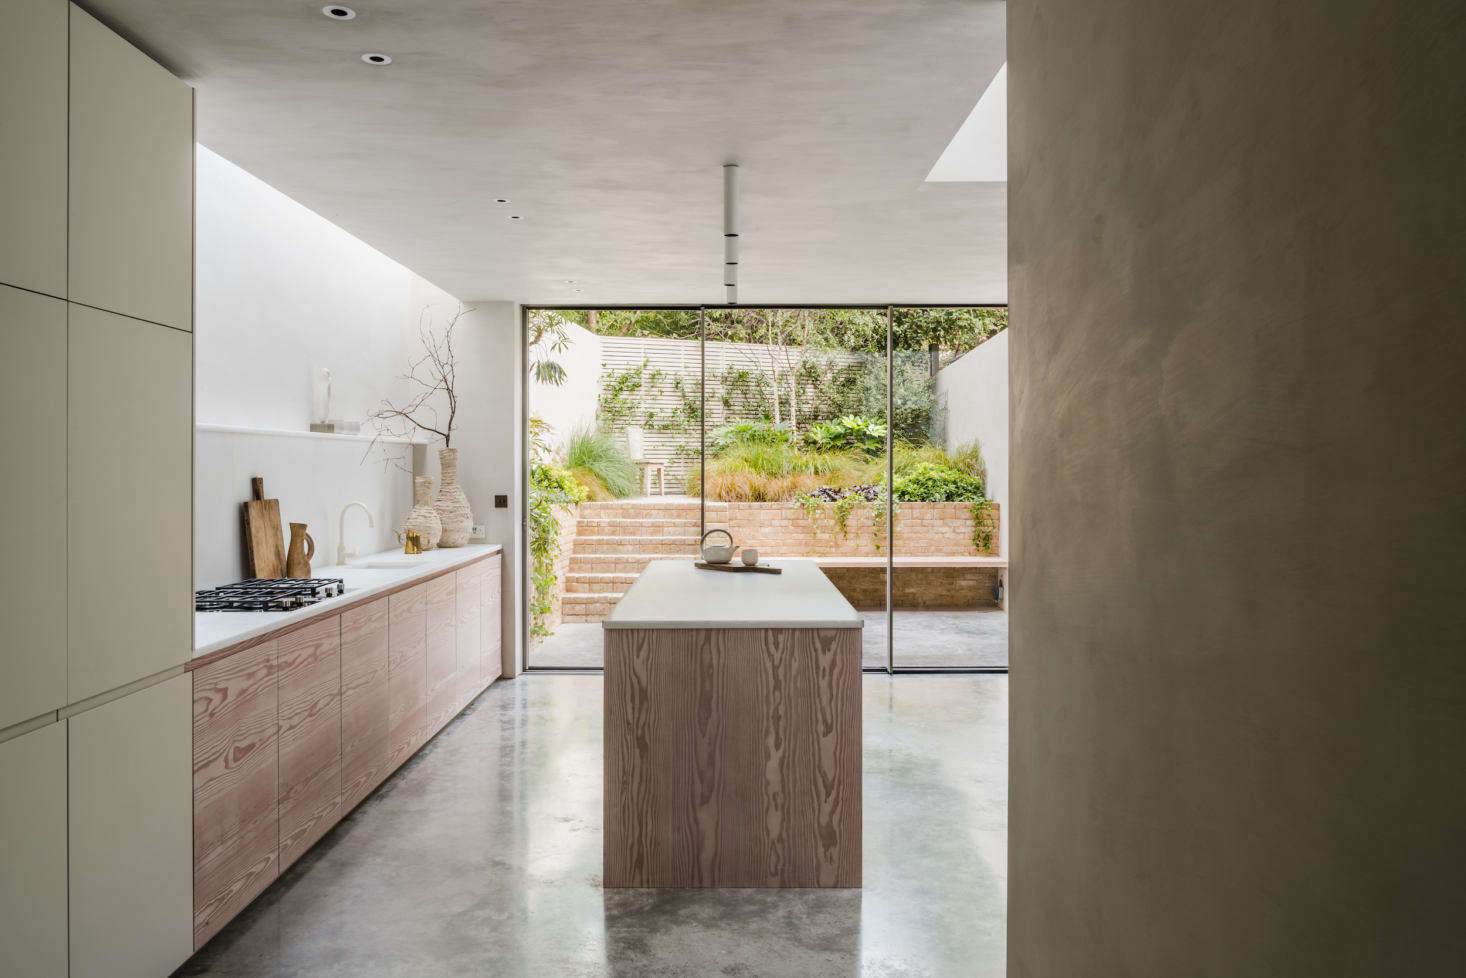 The basement level features polished-concrete flooring throughout and even extends seamlessly to the garden, just beyond the sliding doors in the kitchen.